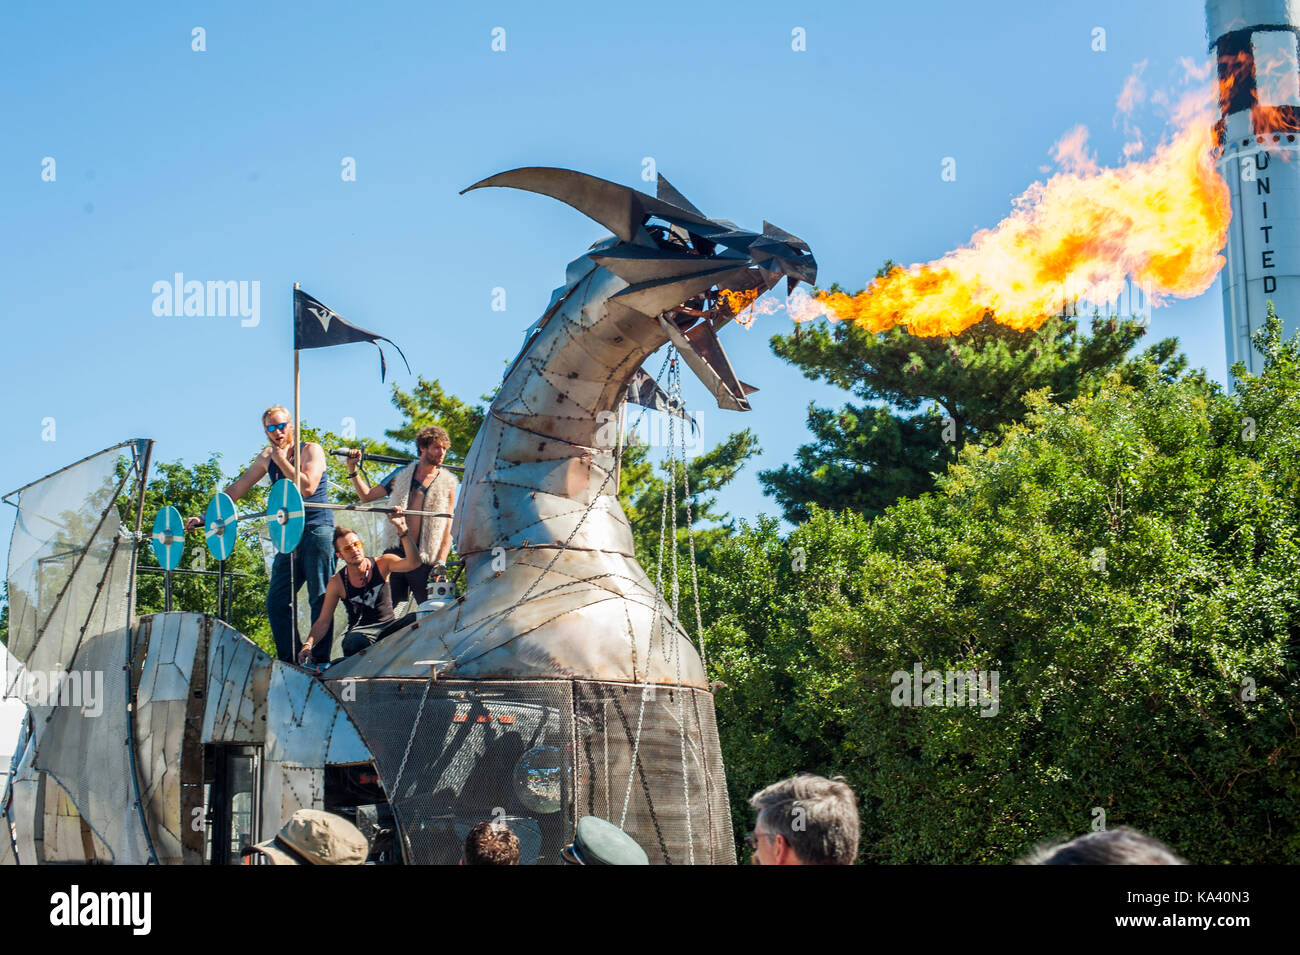 QUEENS, NEW YORK - SEPTEMBER 23:Members of the Toronto based Heavy Meta crew with the group's fire breathing - Stock Image